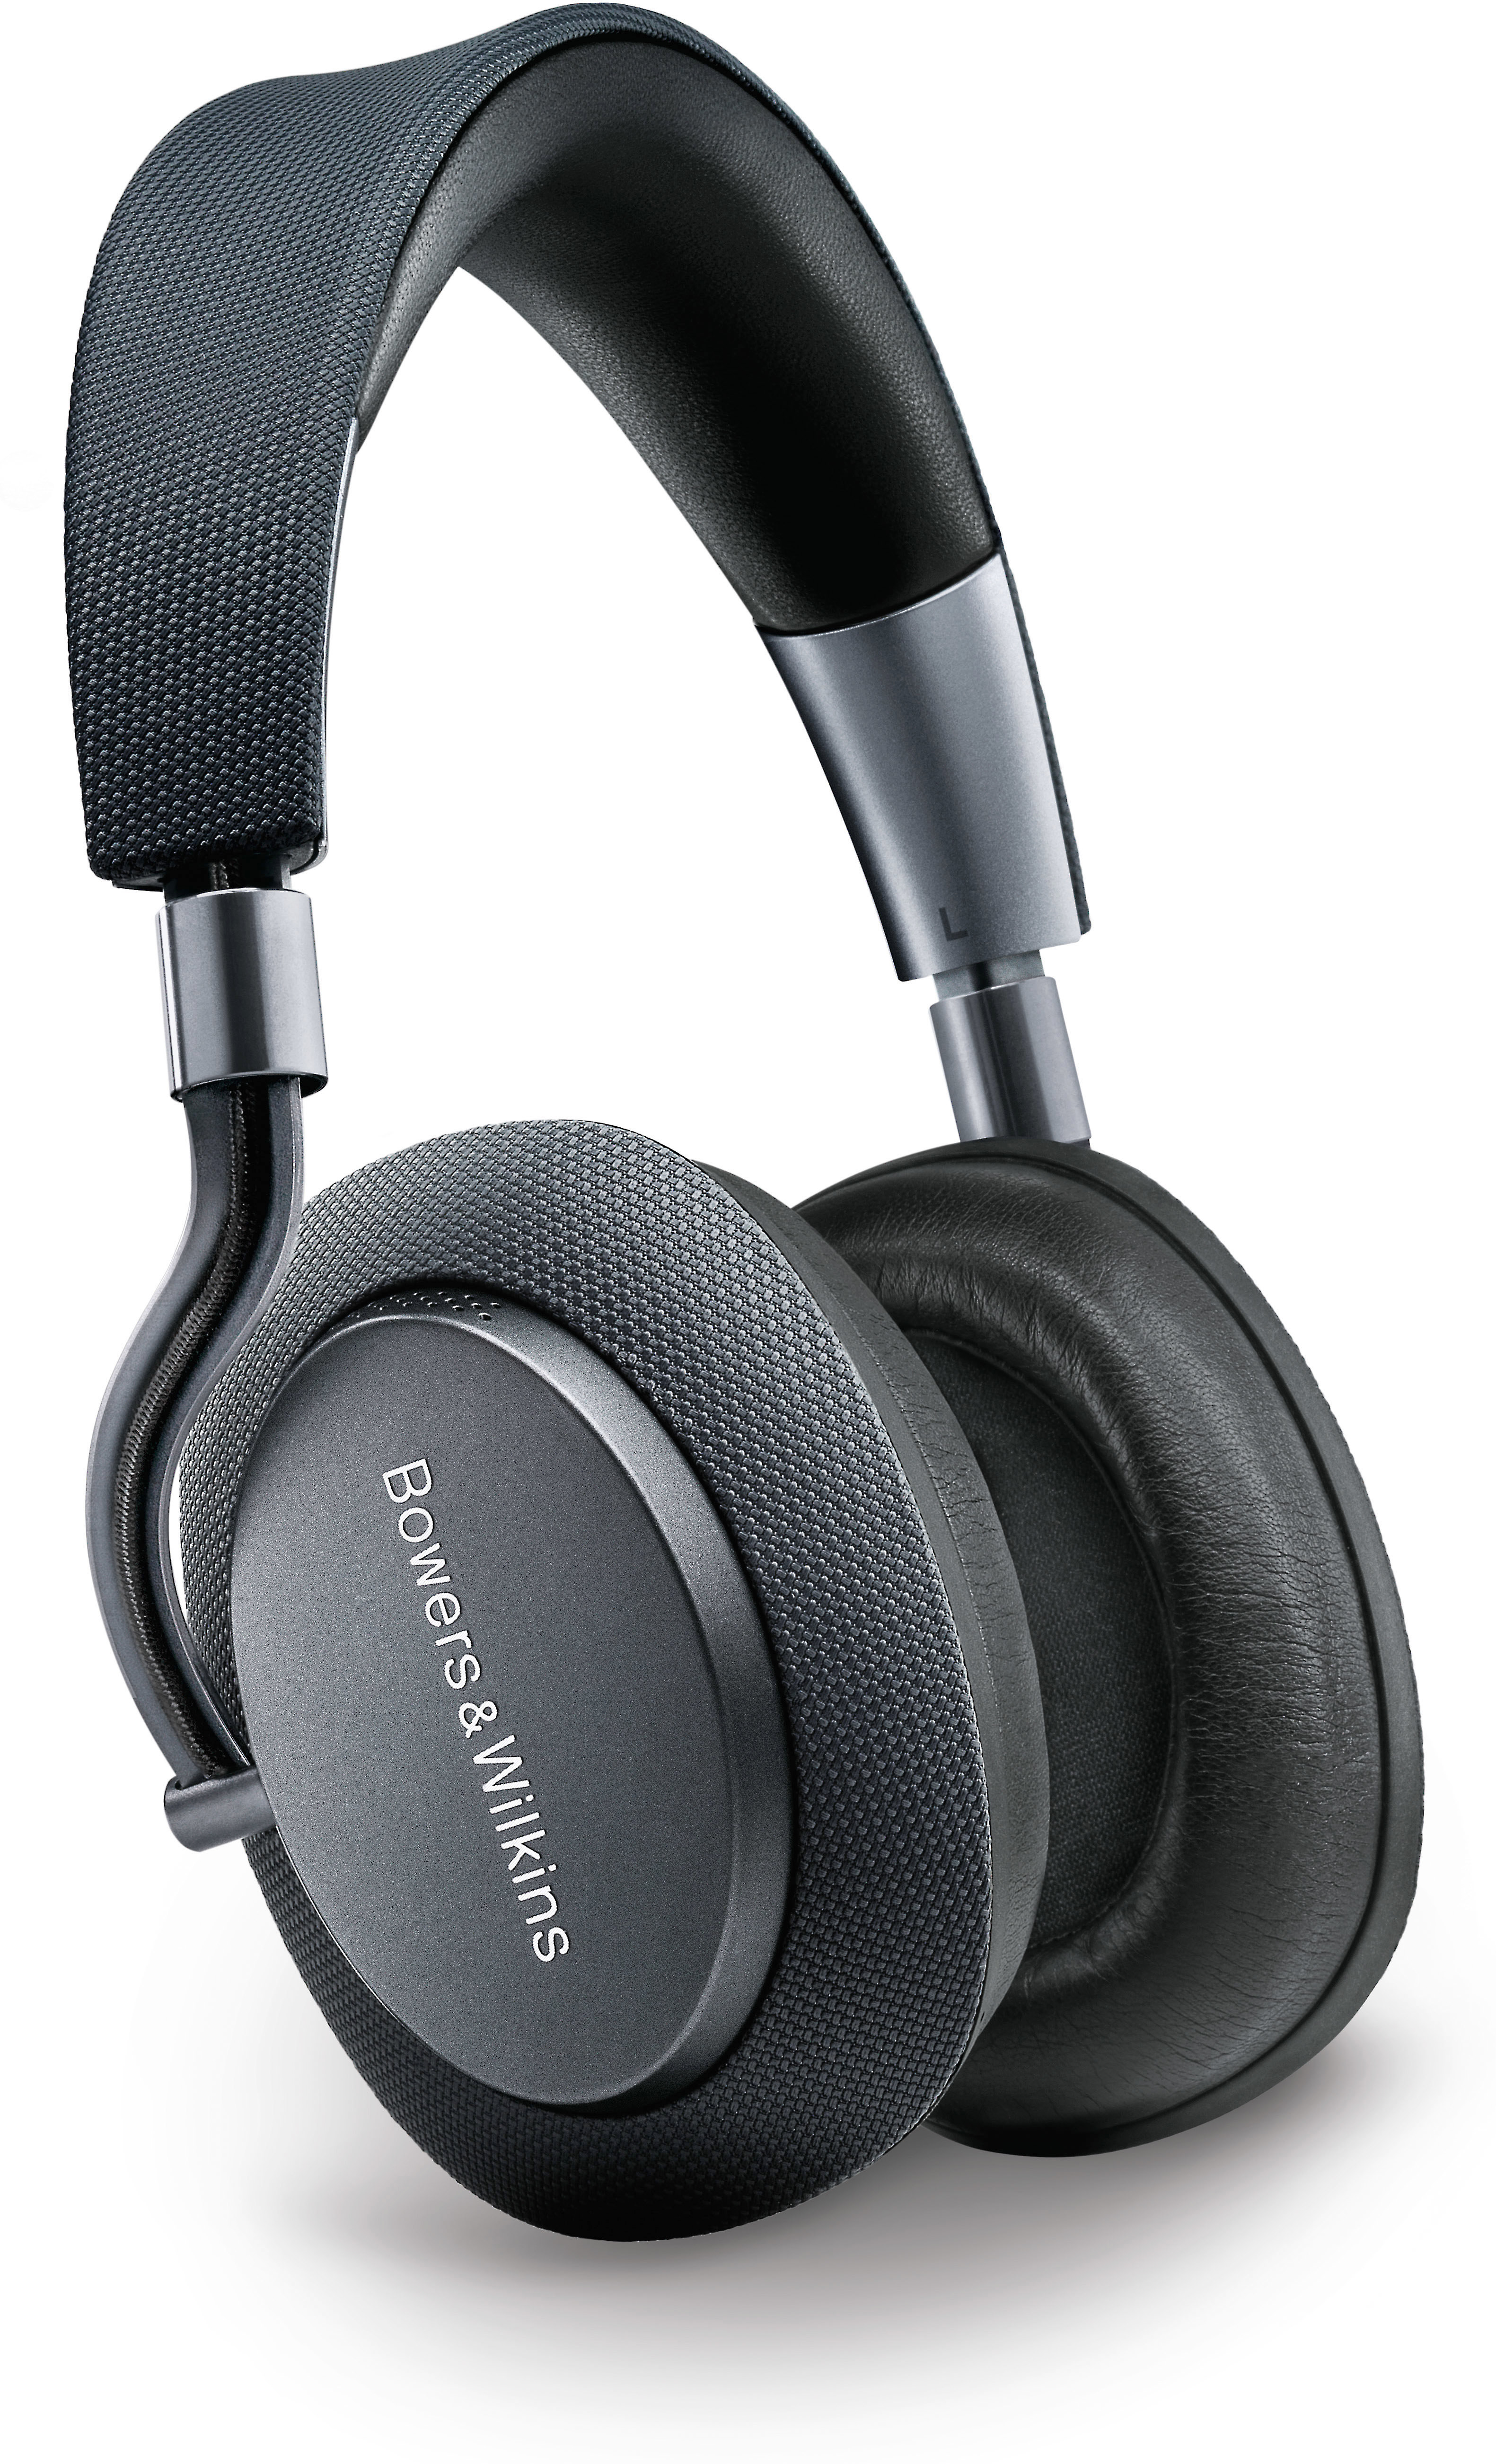 3bec7a853854cc Bowers & Wilkins PX Wireless (Space Grey) Over-ear noise-canceling Bluetooth®  headphones at Crutchfield